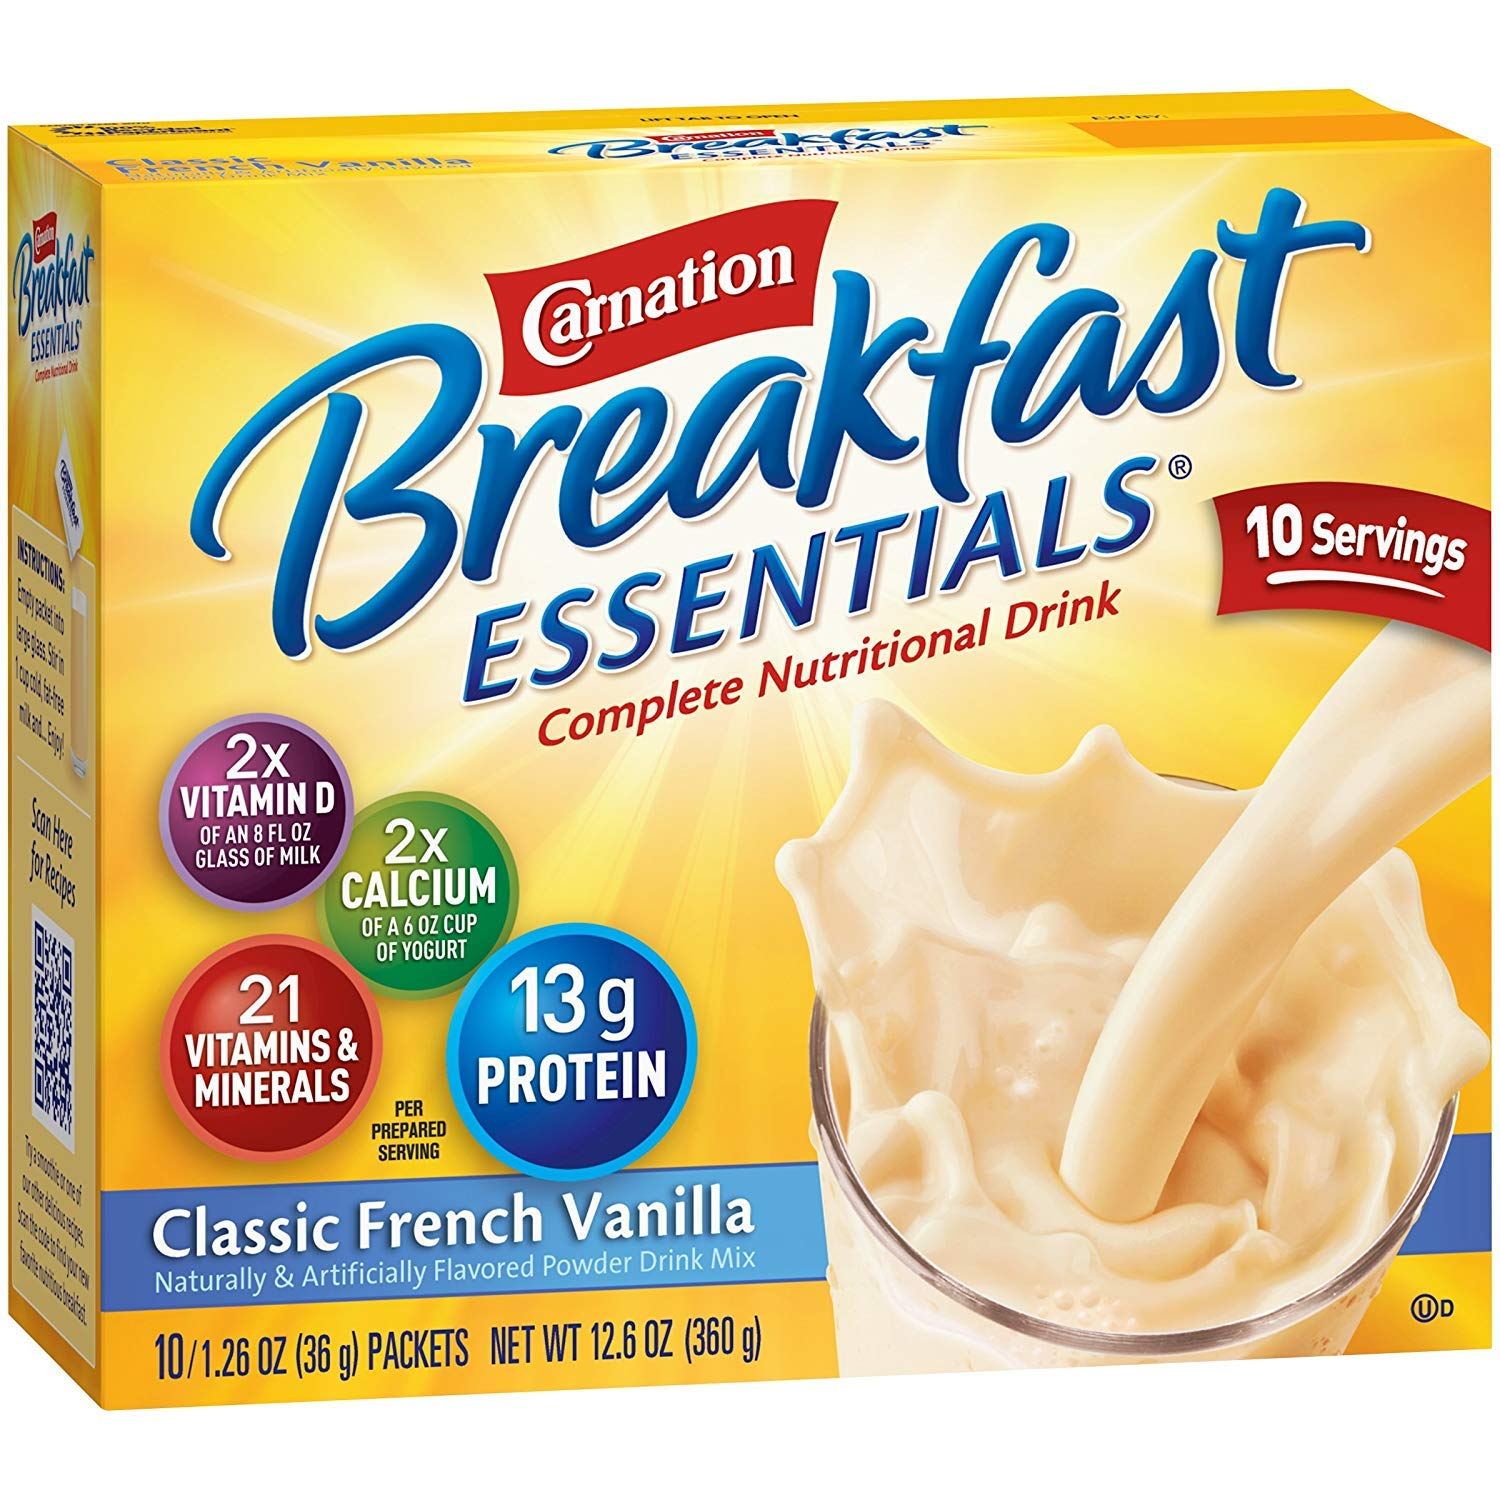 Carnation Breakfast Essentials Instant Complete Nutritional Drink, Classic French Vanilla, 12.6 OZ (Pack - 6)